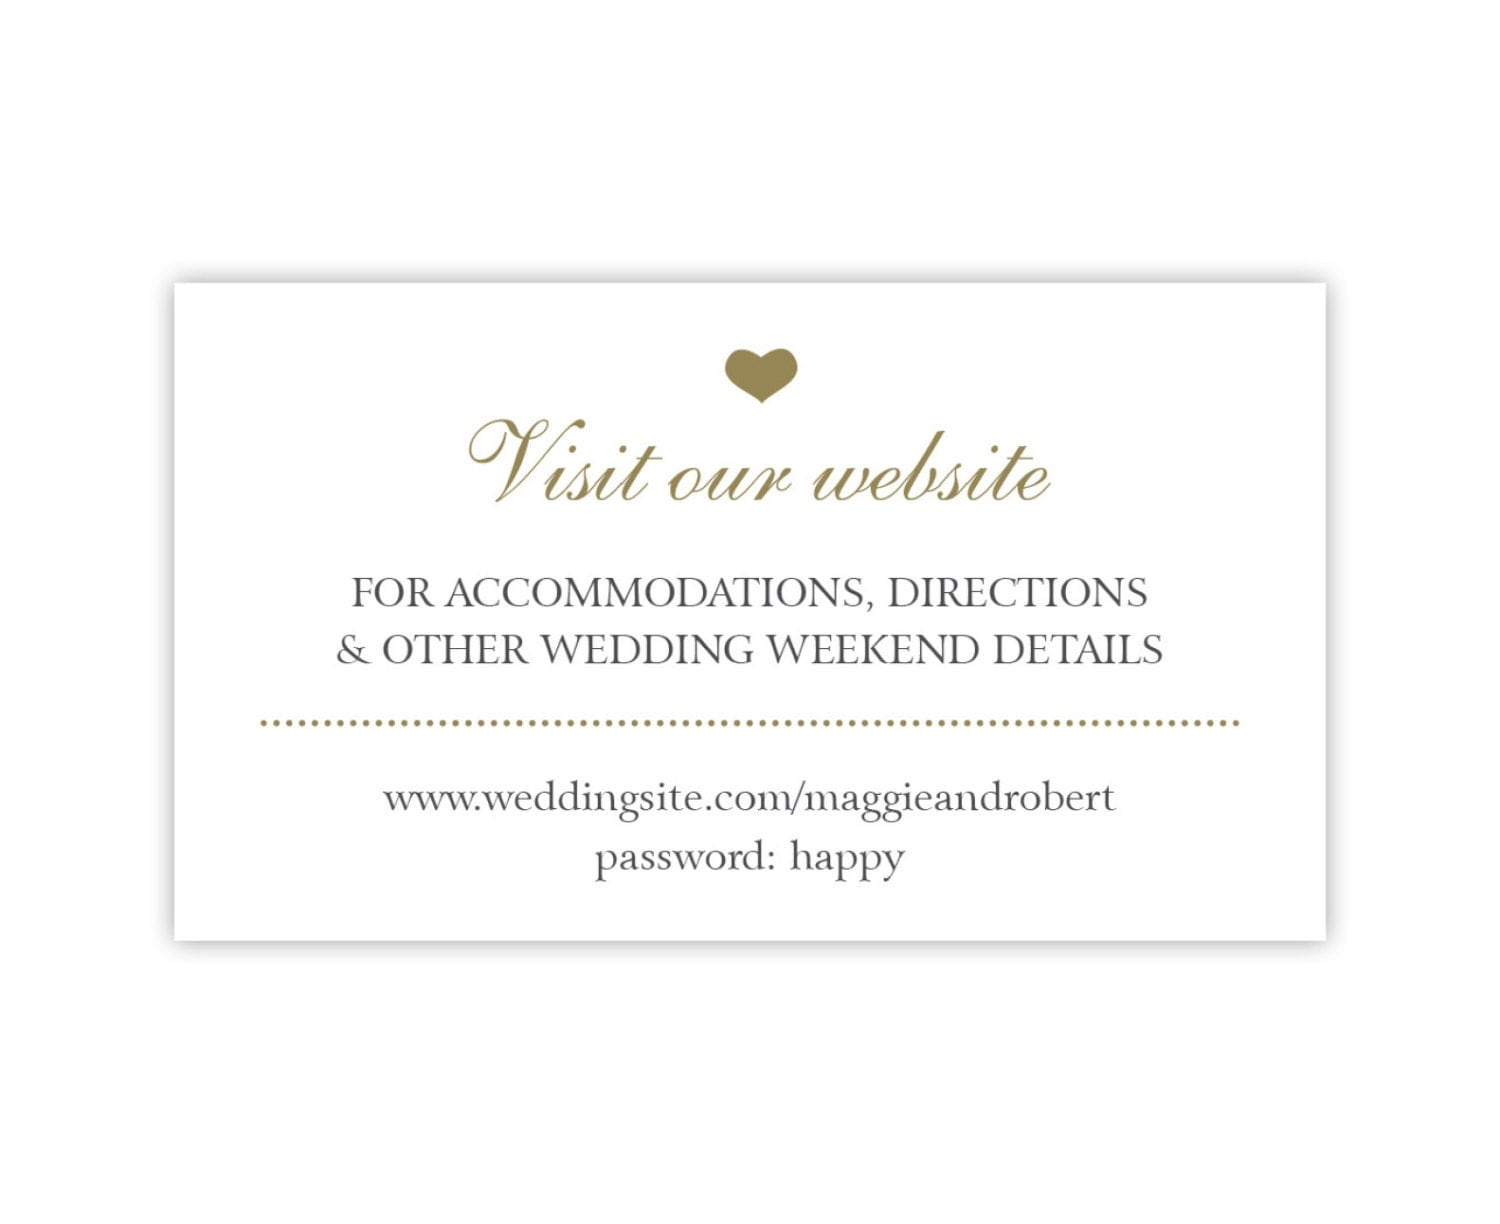 Wedding website cards enclosure cards wedding hashtag for What to ask for wedding registry